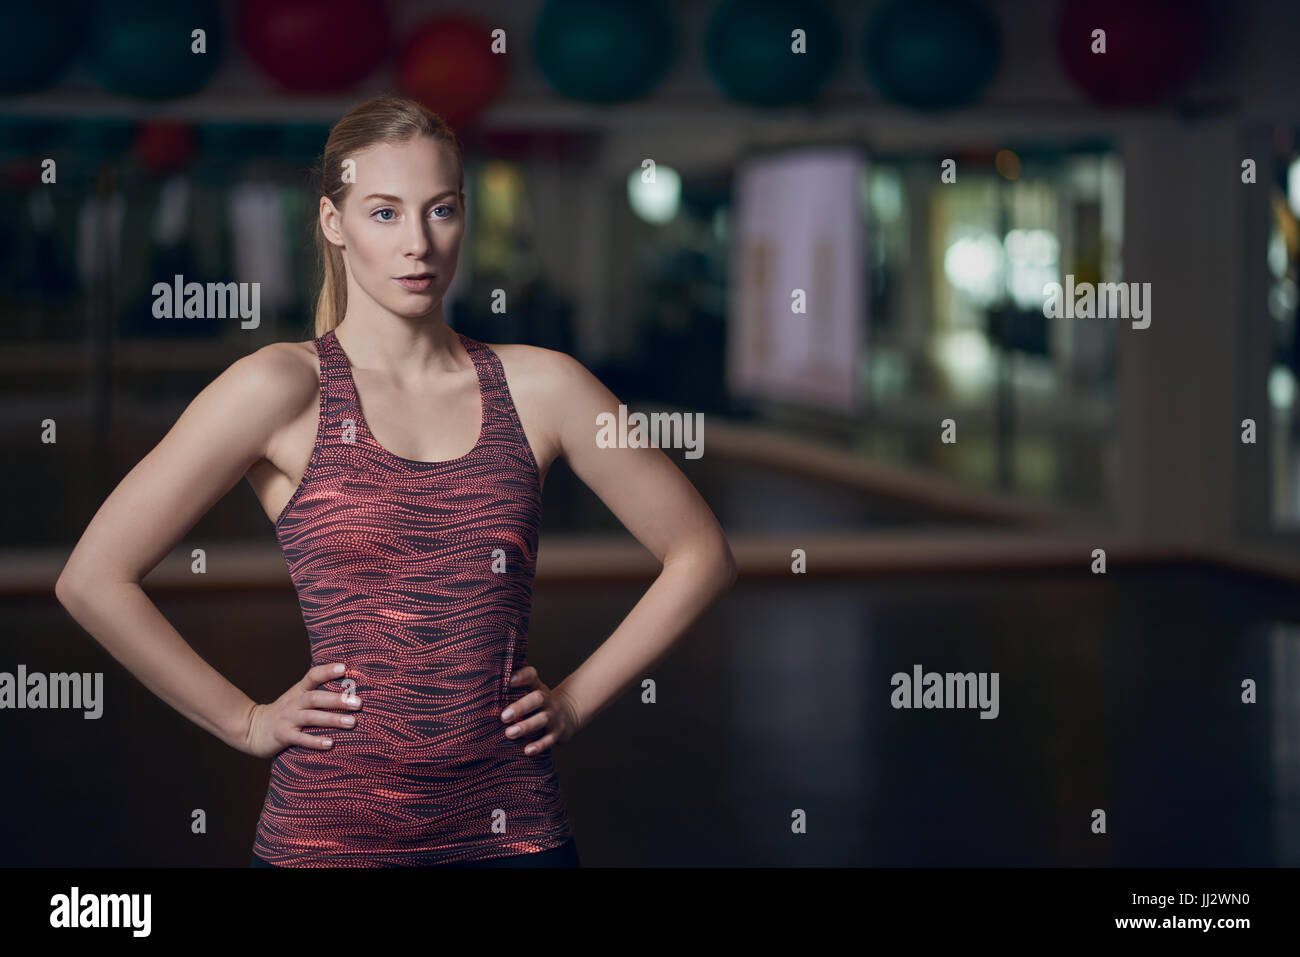 Three quarter body portrait of athletic young woman posing in gym with hands on hips - Stock Image